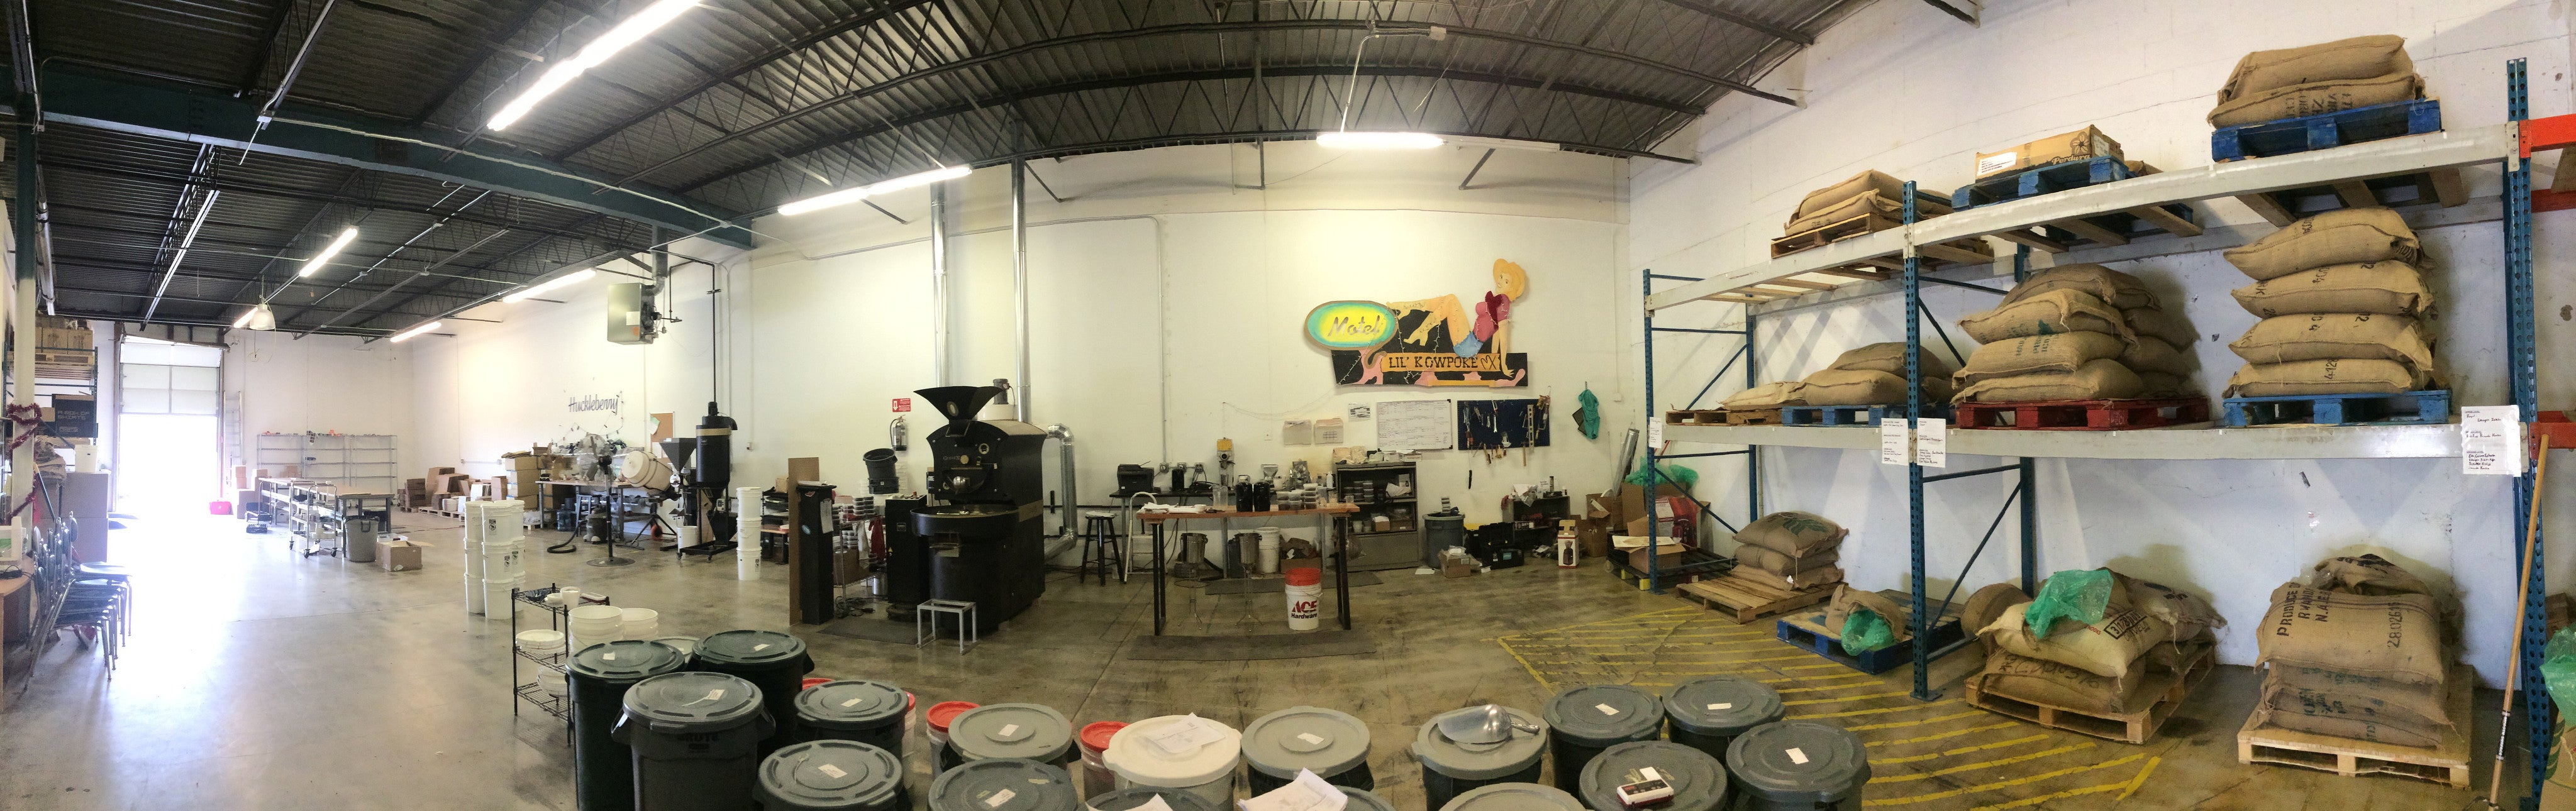 A Mid-June Update from the Warehouse